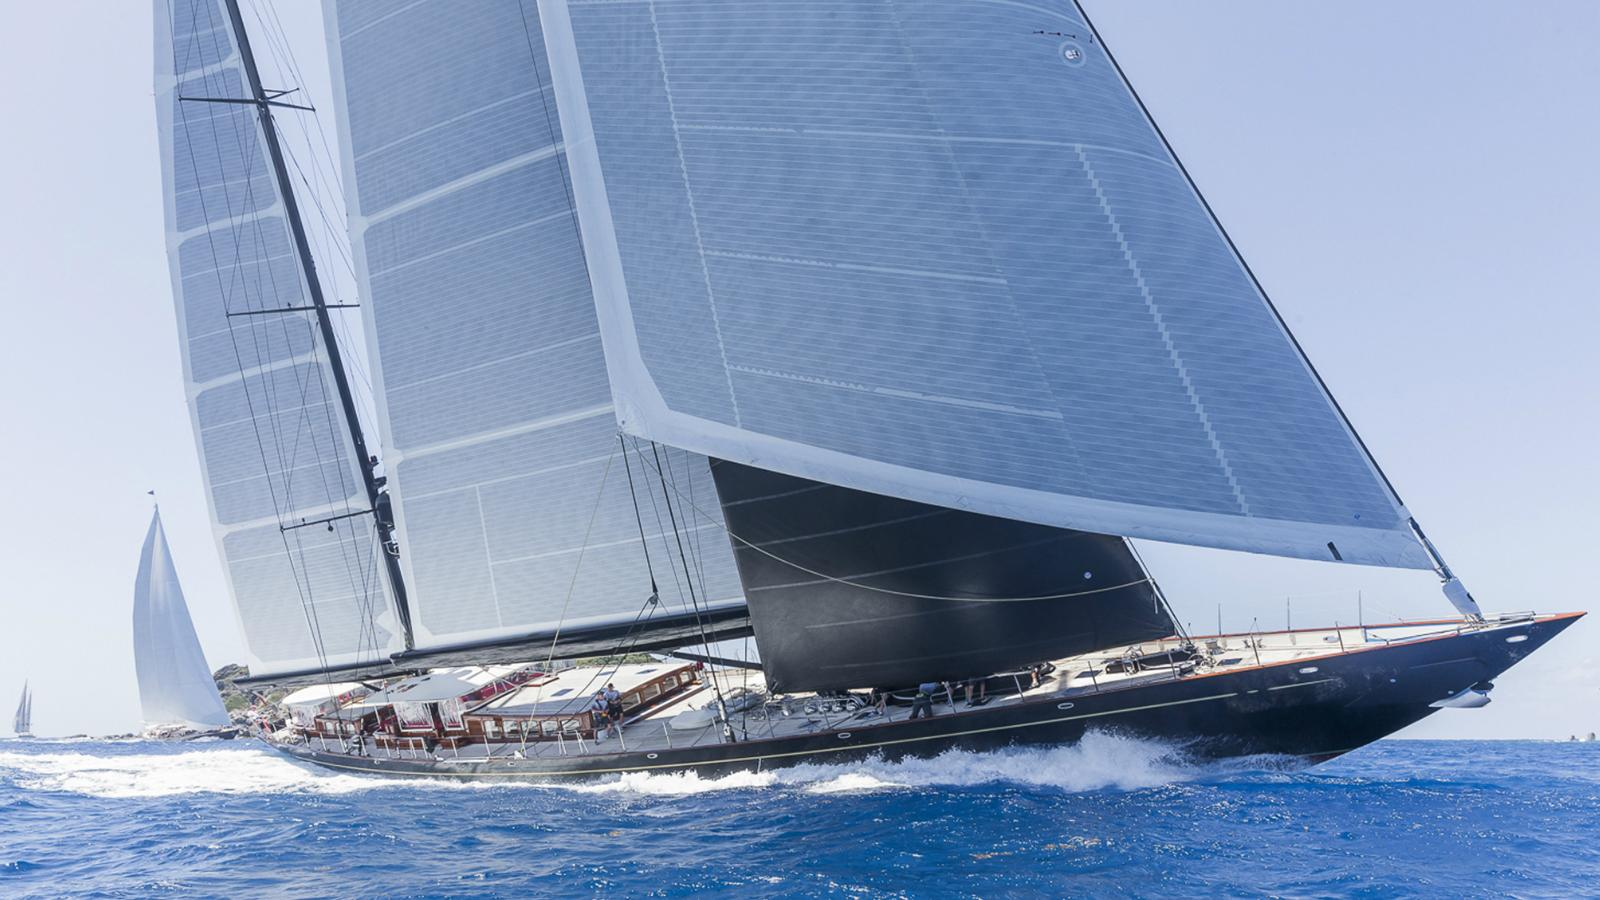 Marie-sailing-boat-luxury-yacht